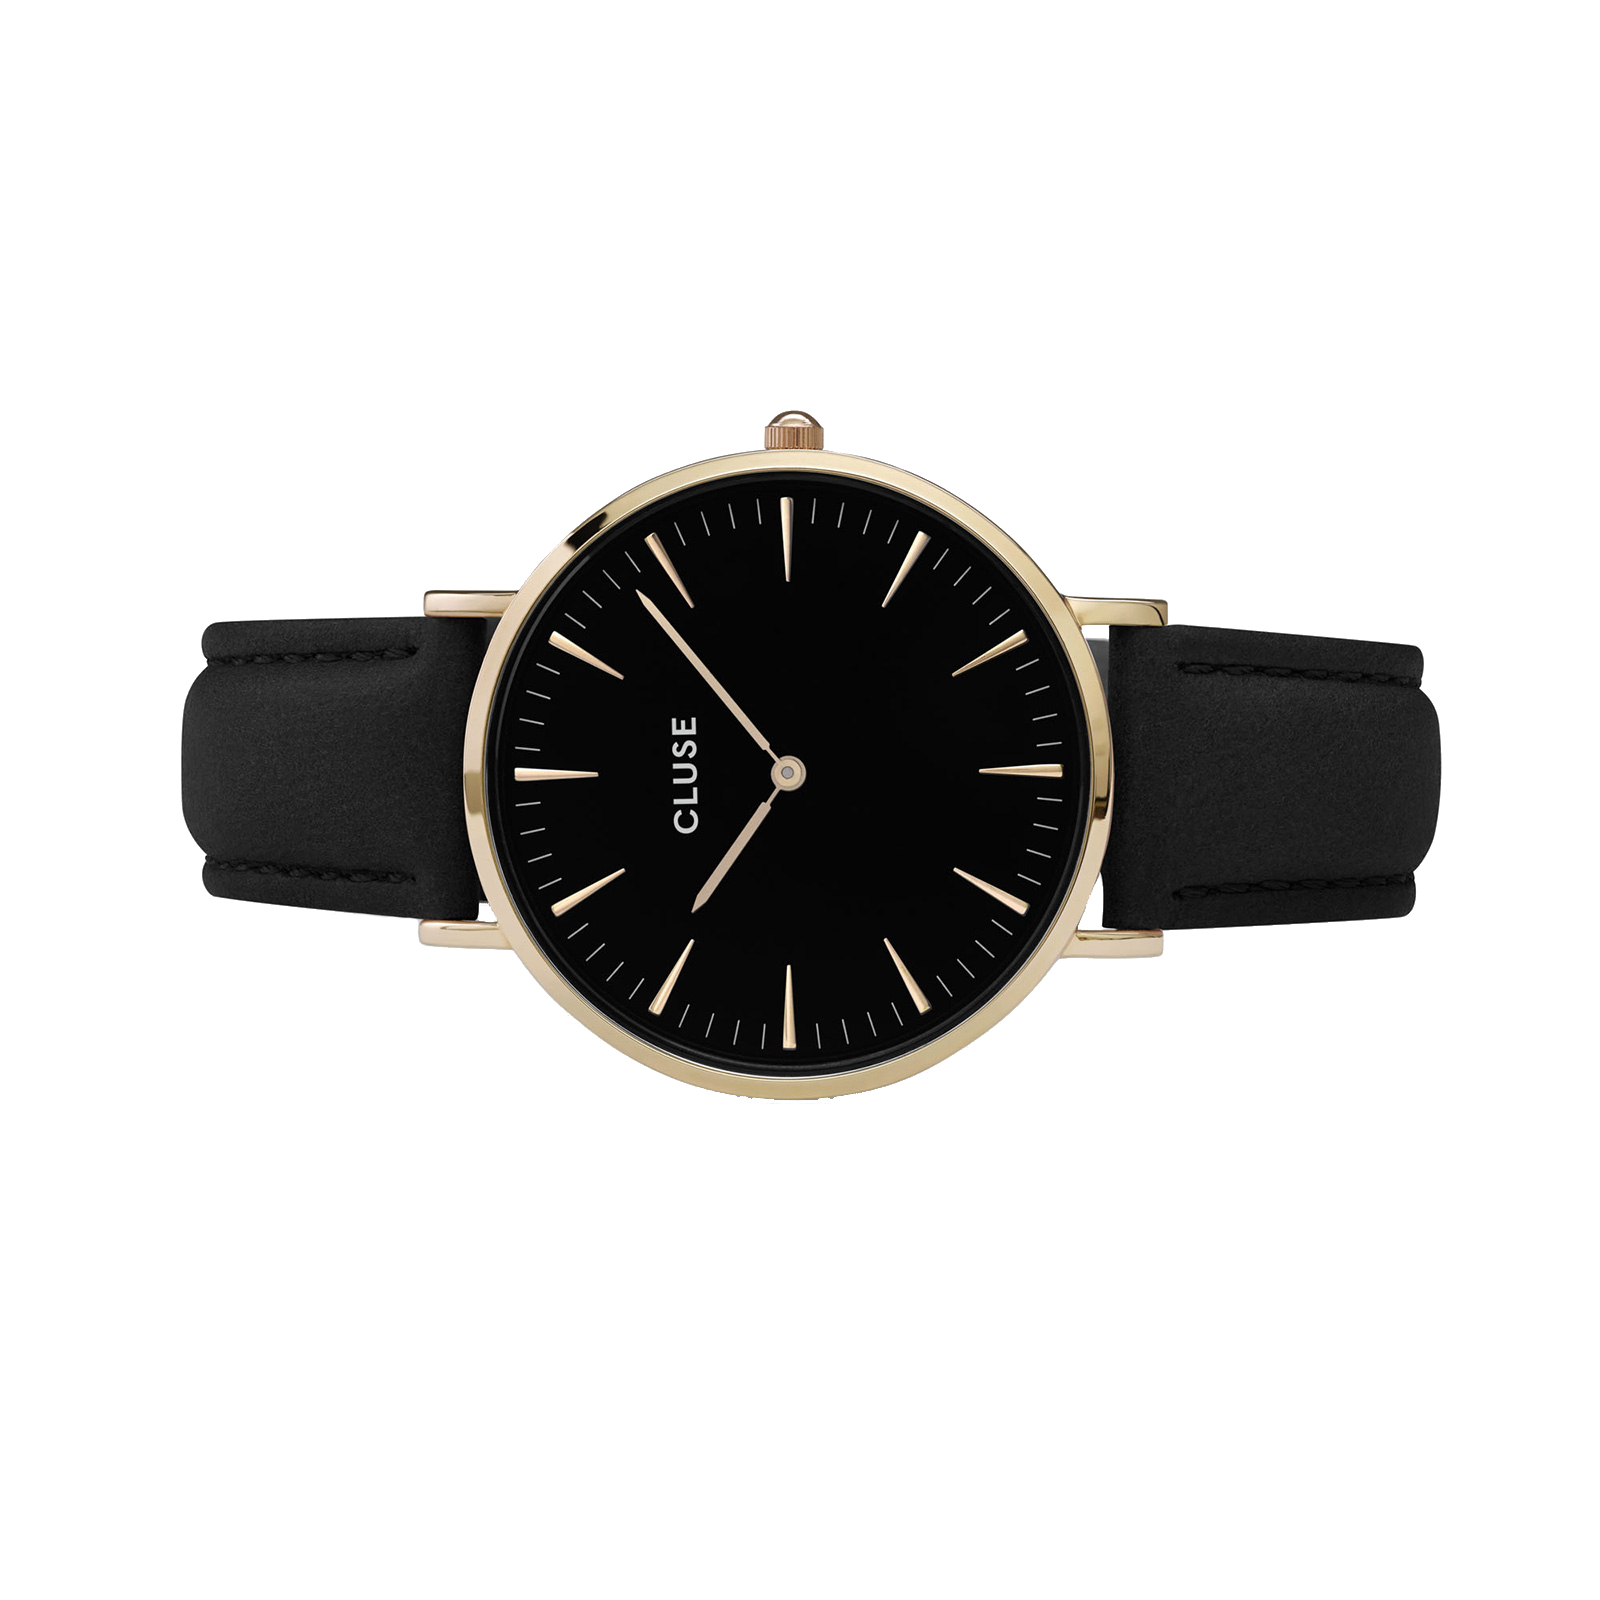 Montre La Bohu00e8me or et noir Cluse - La Collection